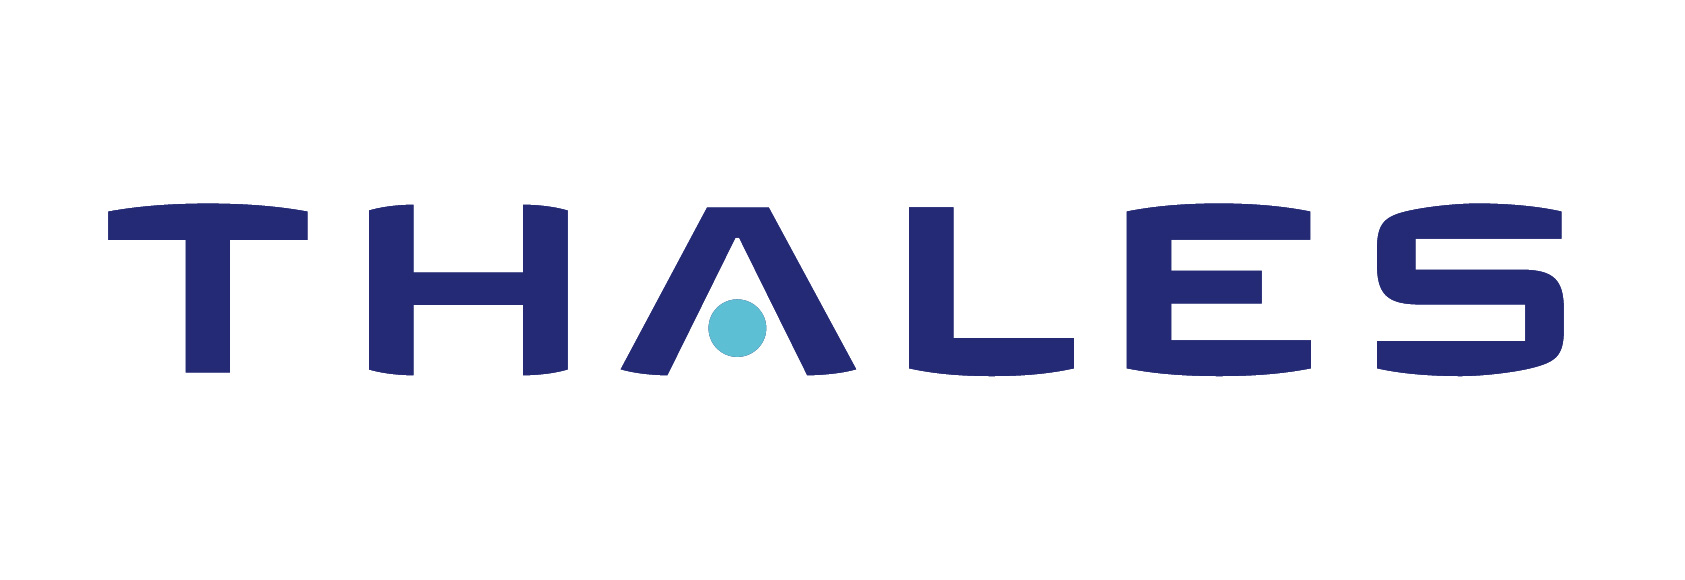 Thales Delivers Innovative In-Service Support for New AOPS Vessel in Partnership with Royal Canadian Navy